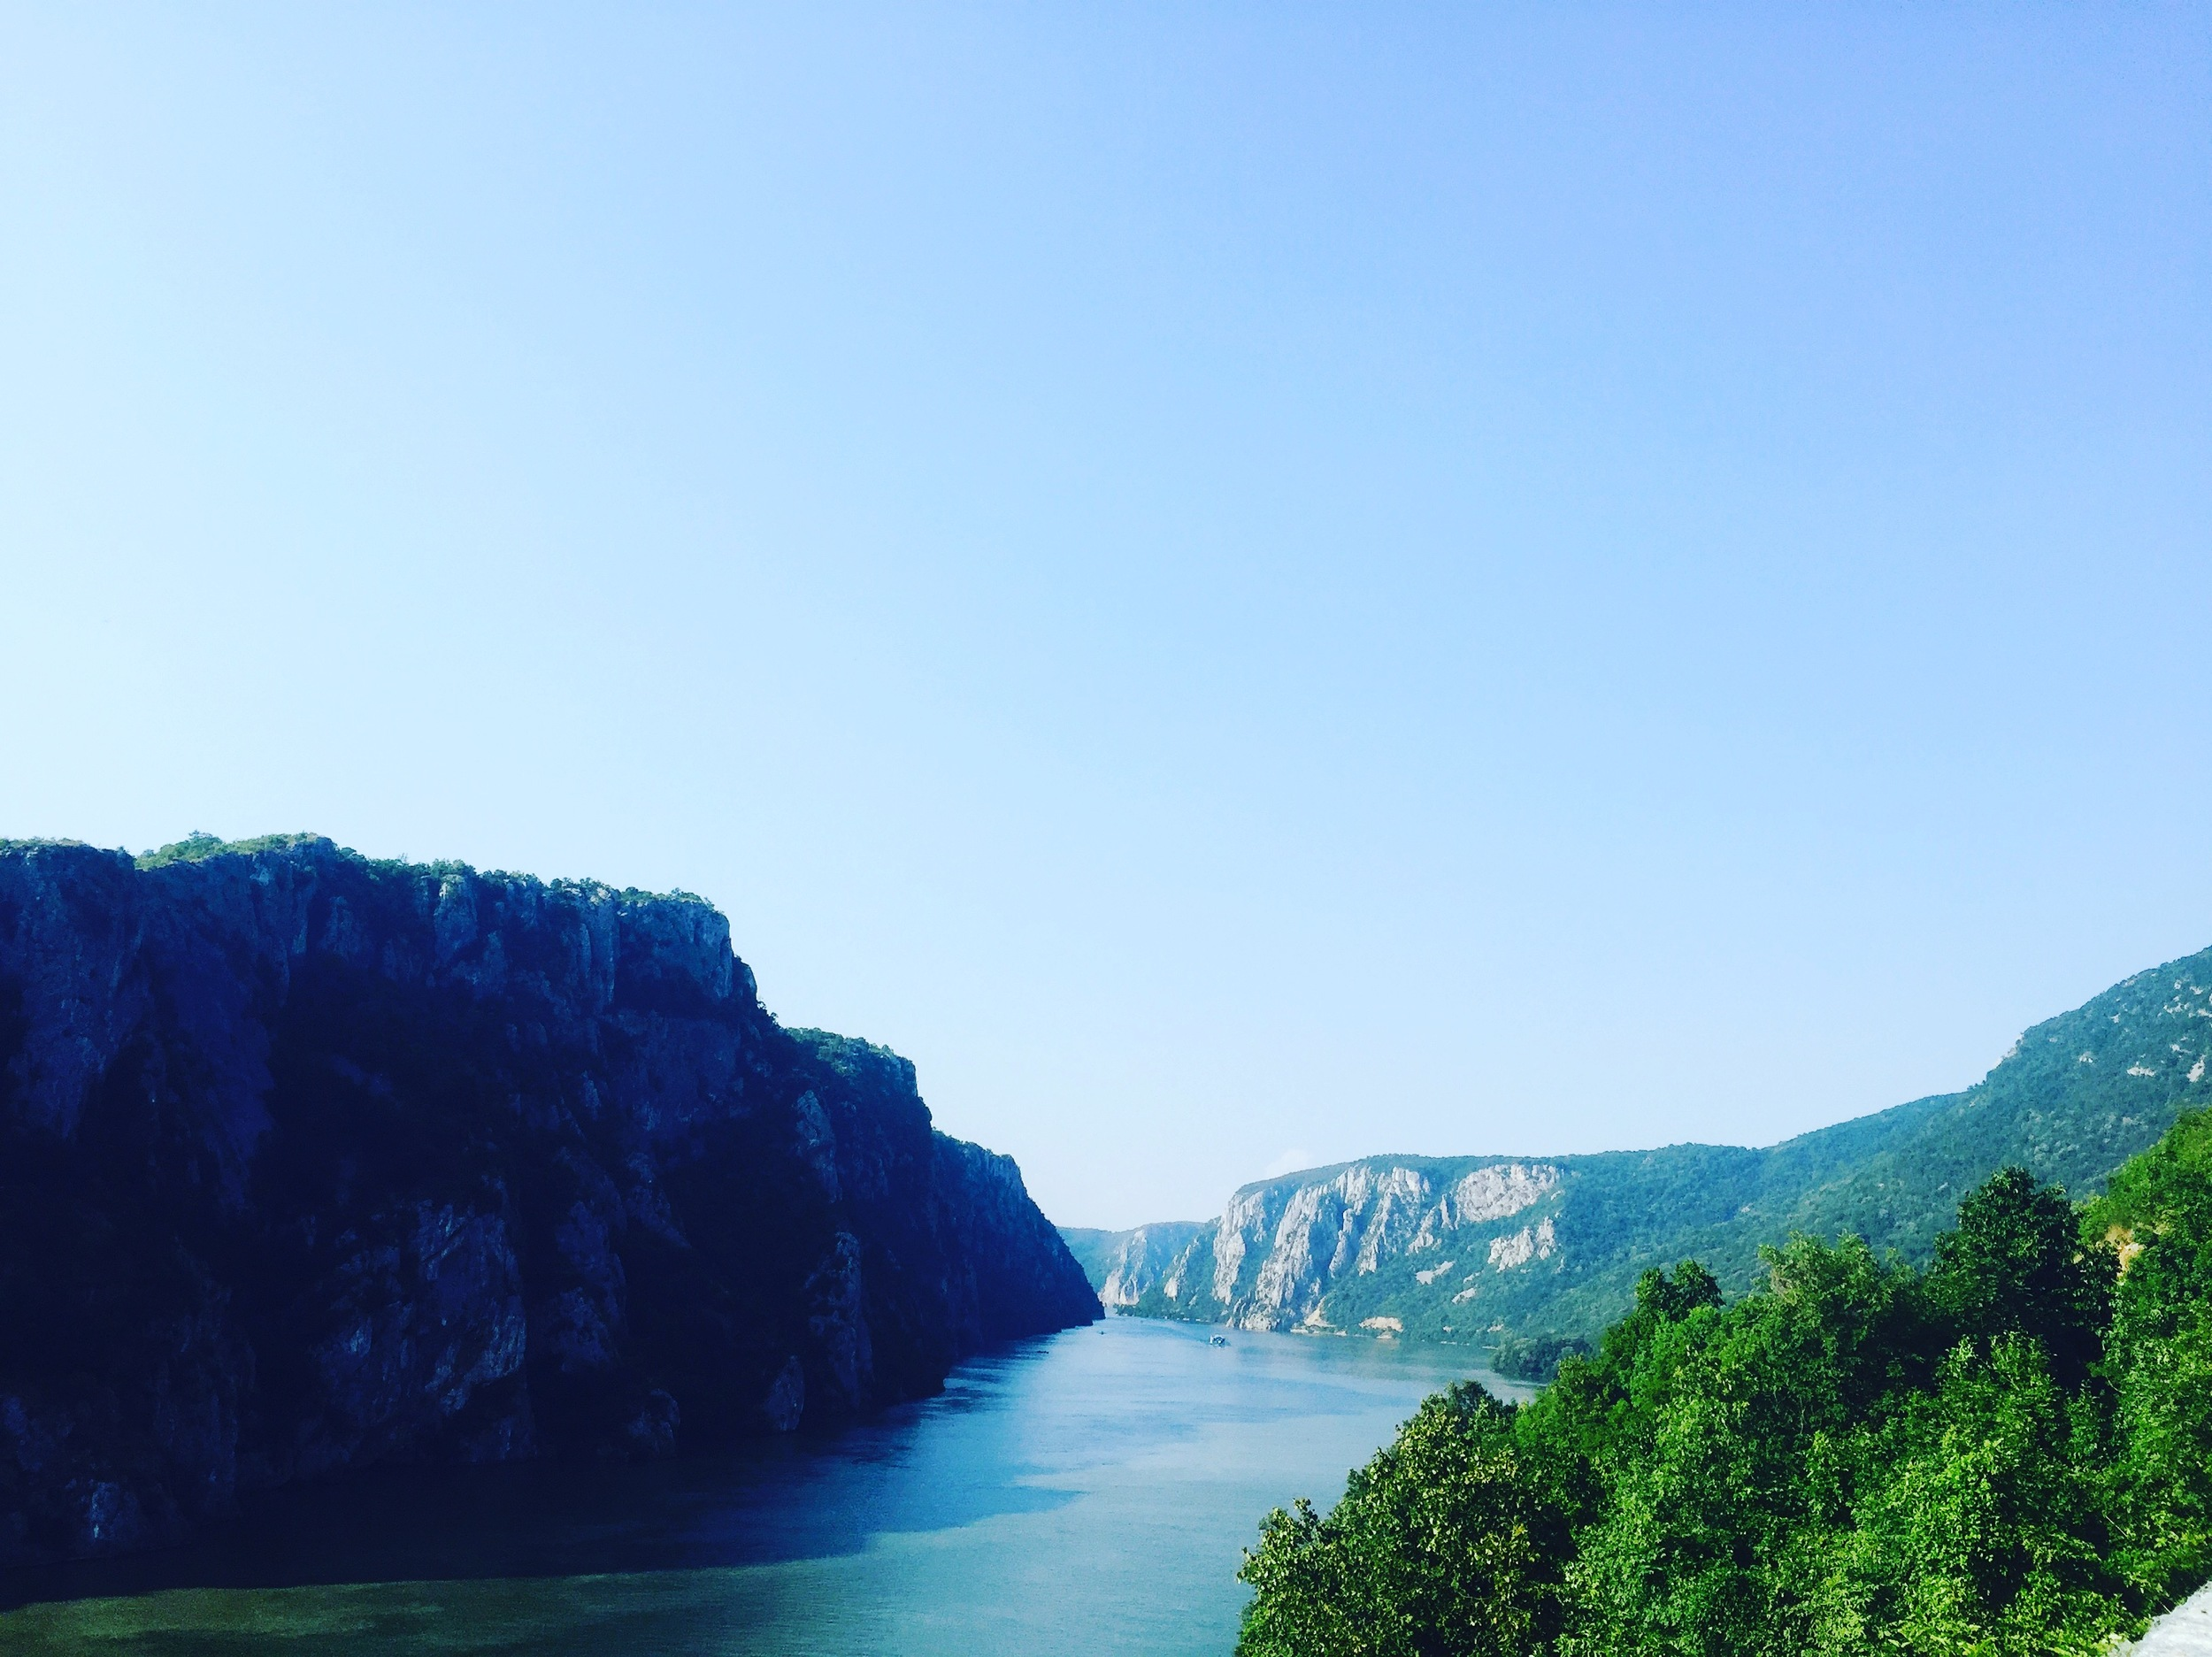 The Iron Walls along the Danube look like something out of Middle Earth.